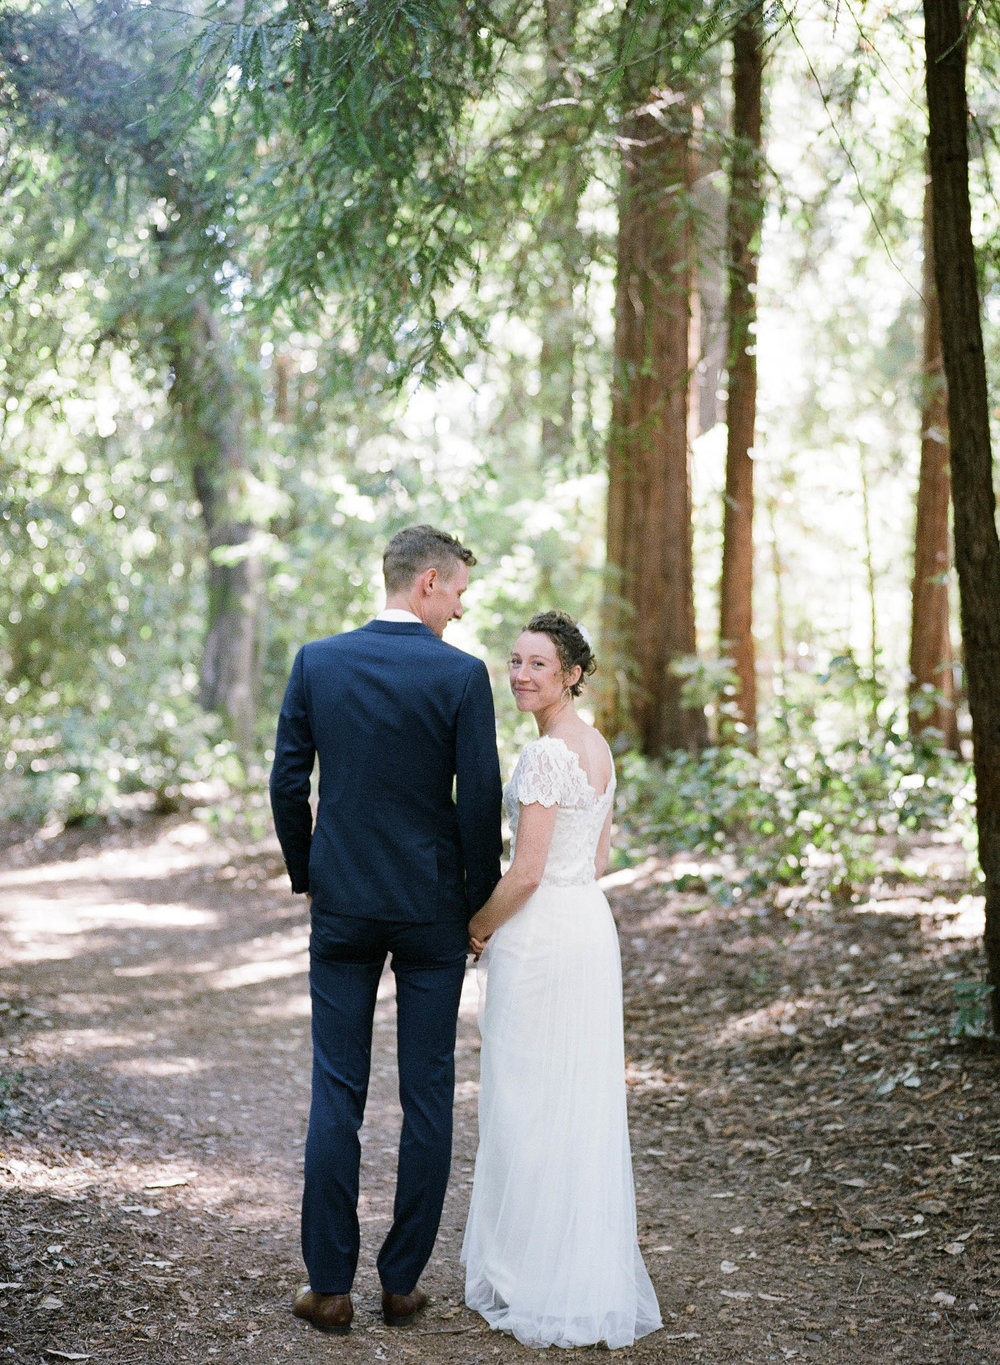 092918_J+S_Mt Madonna Redwoods Wedding_Buena Lane Photography_014.jpg